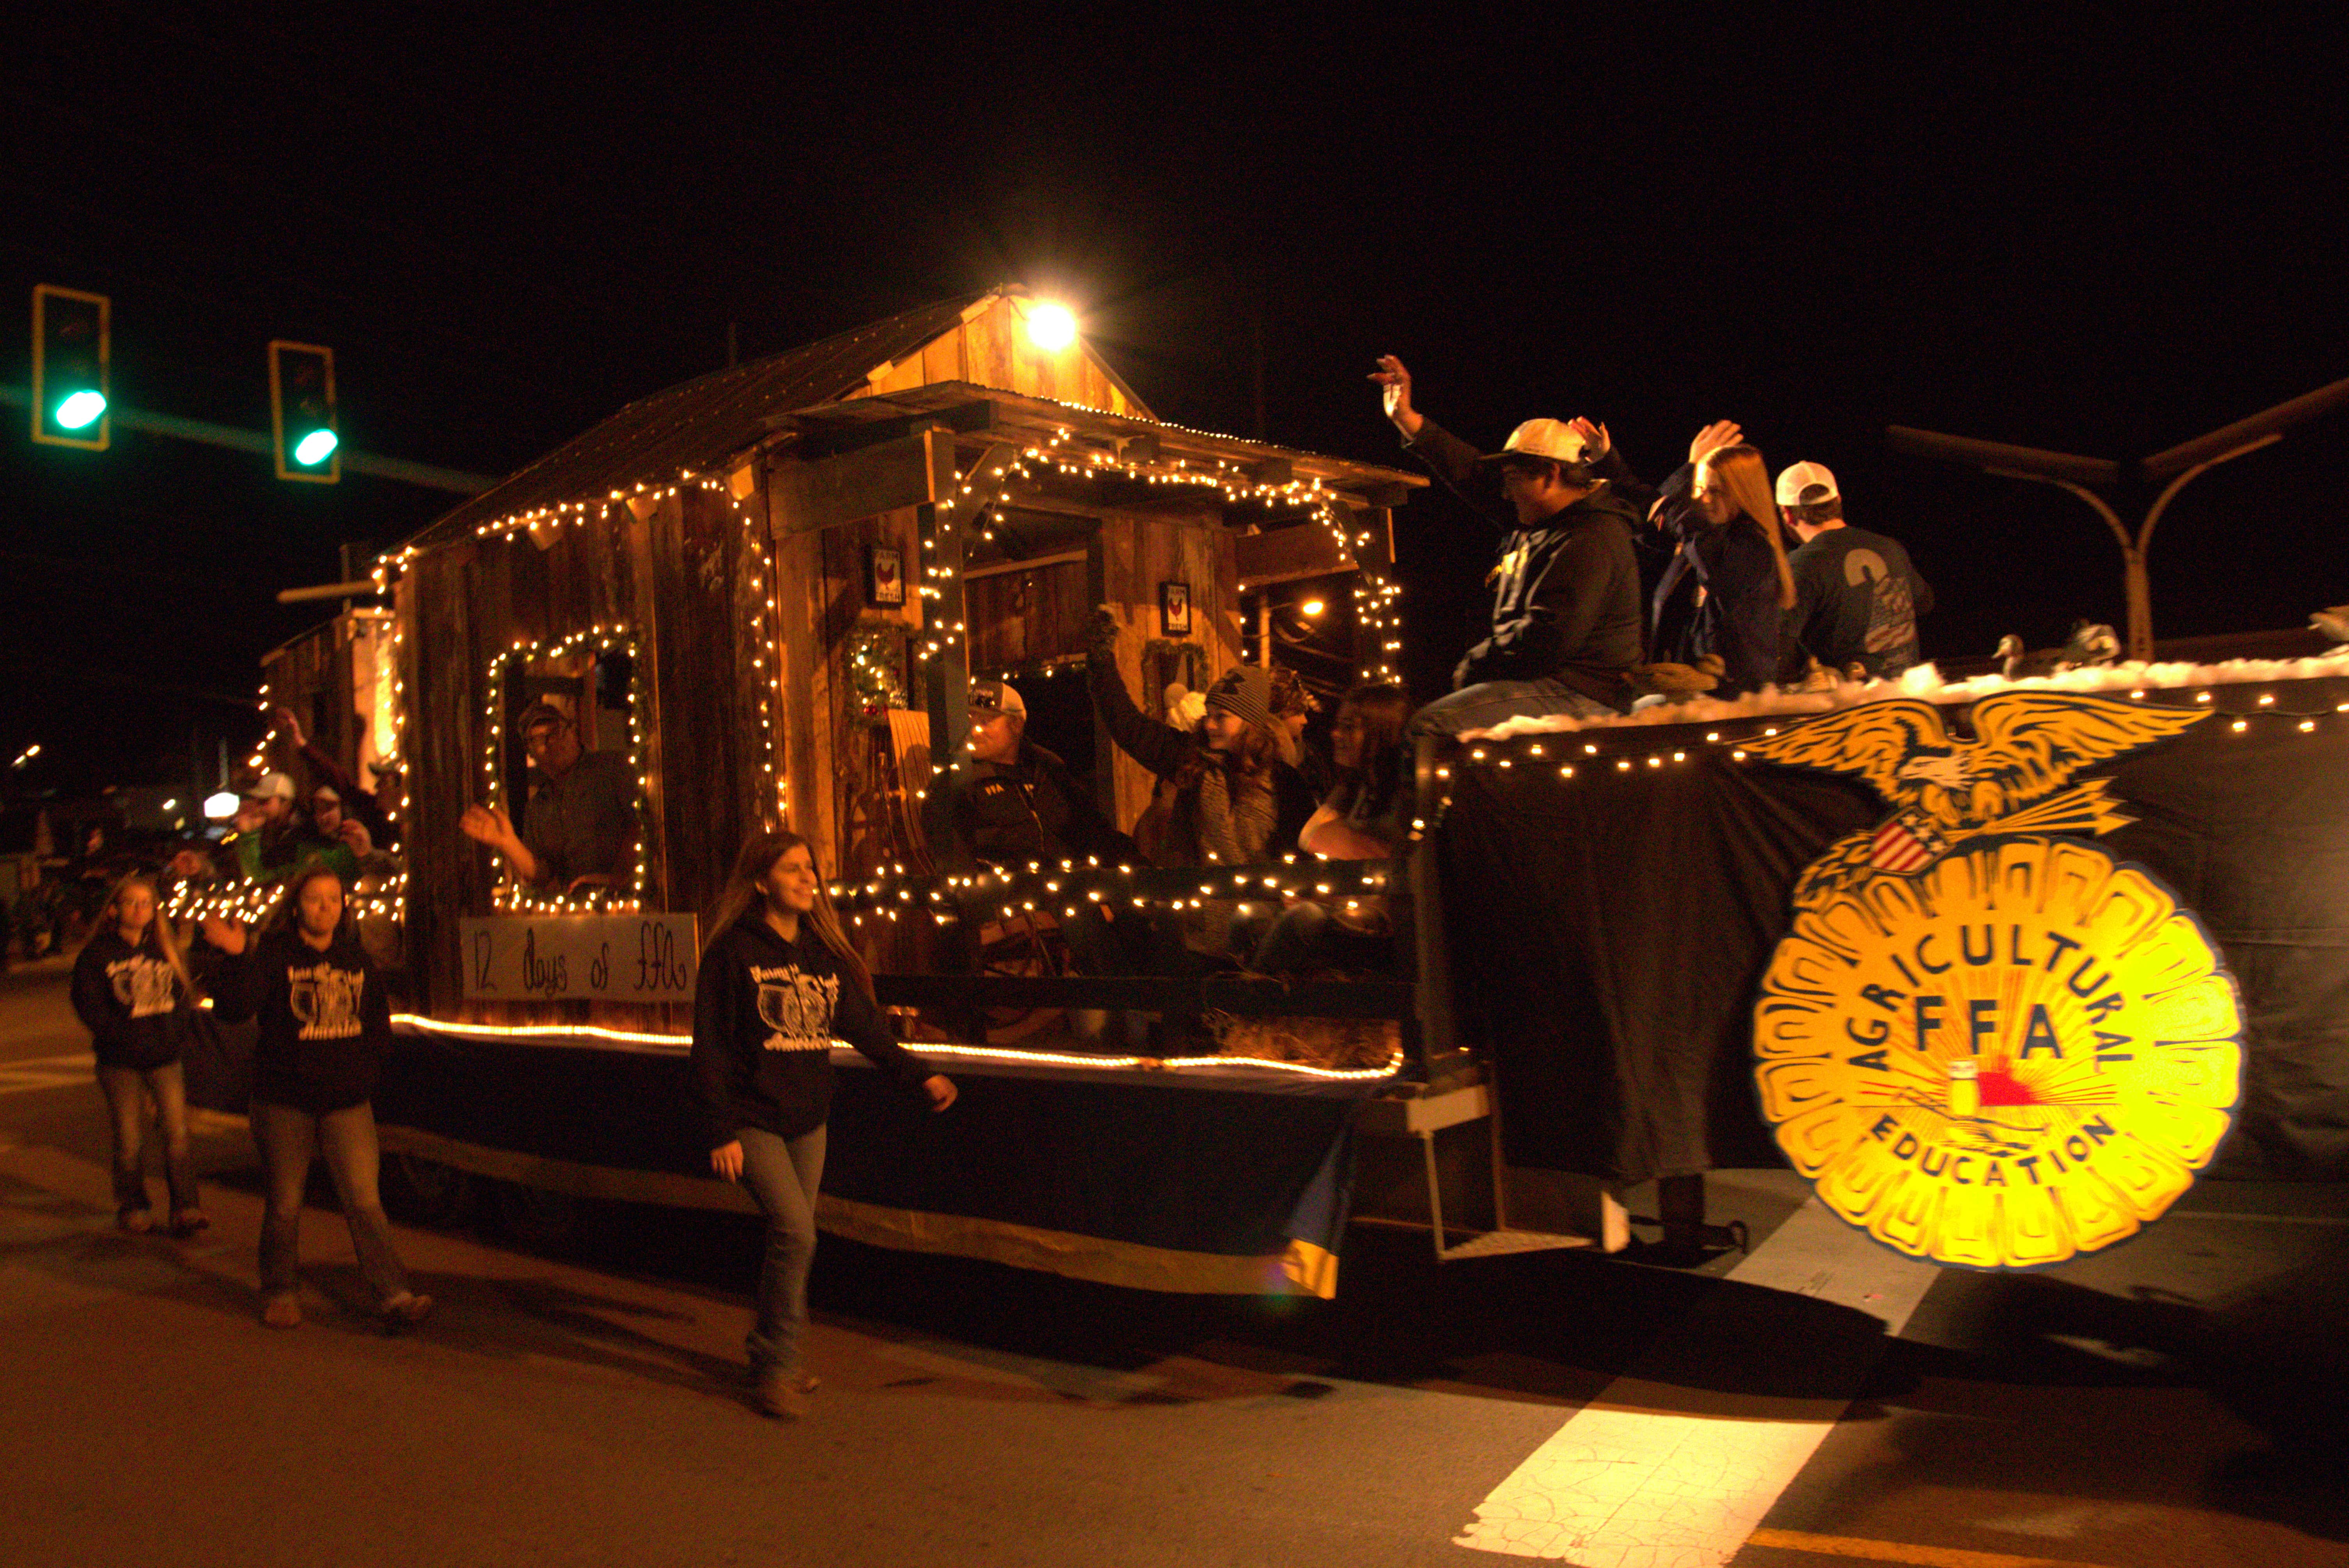 Glasgow Ky Christmas Parade 2020 Route 2020 Christmas Parade to be held Dec. 5, route lengthened | WCLU Radio